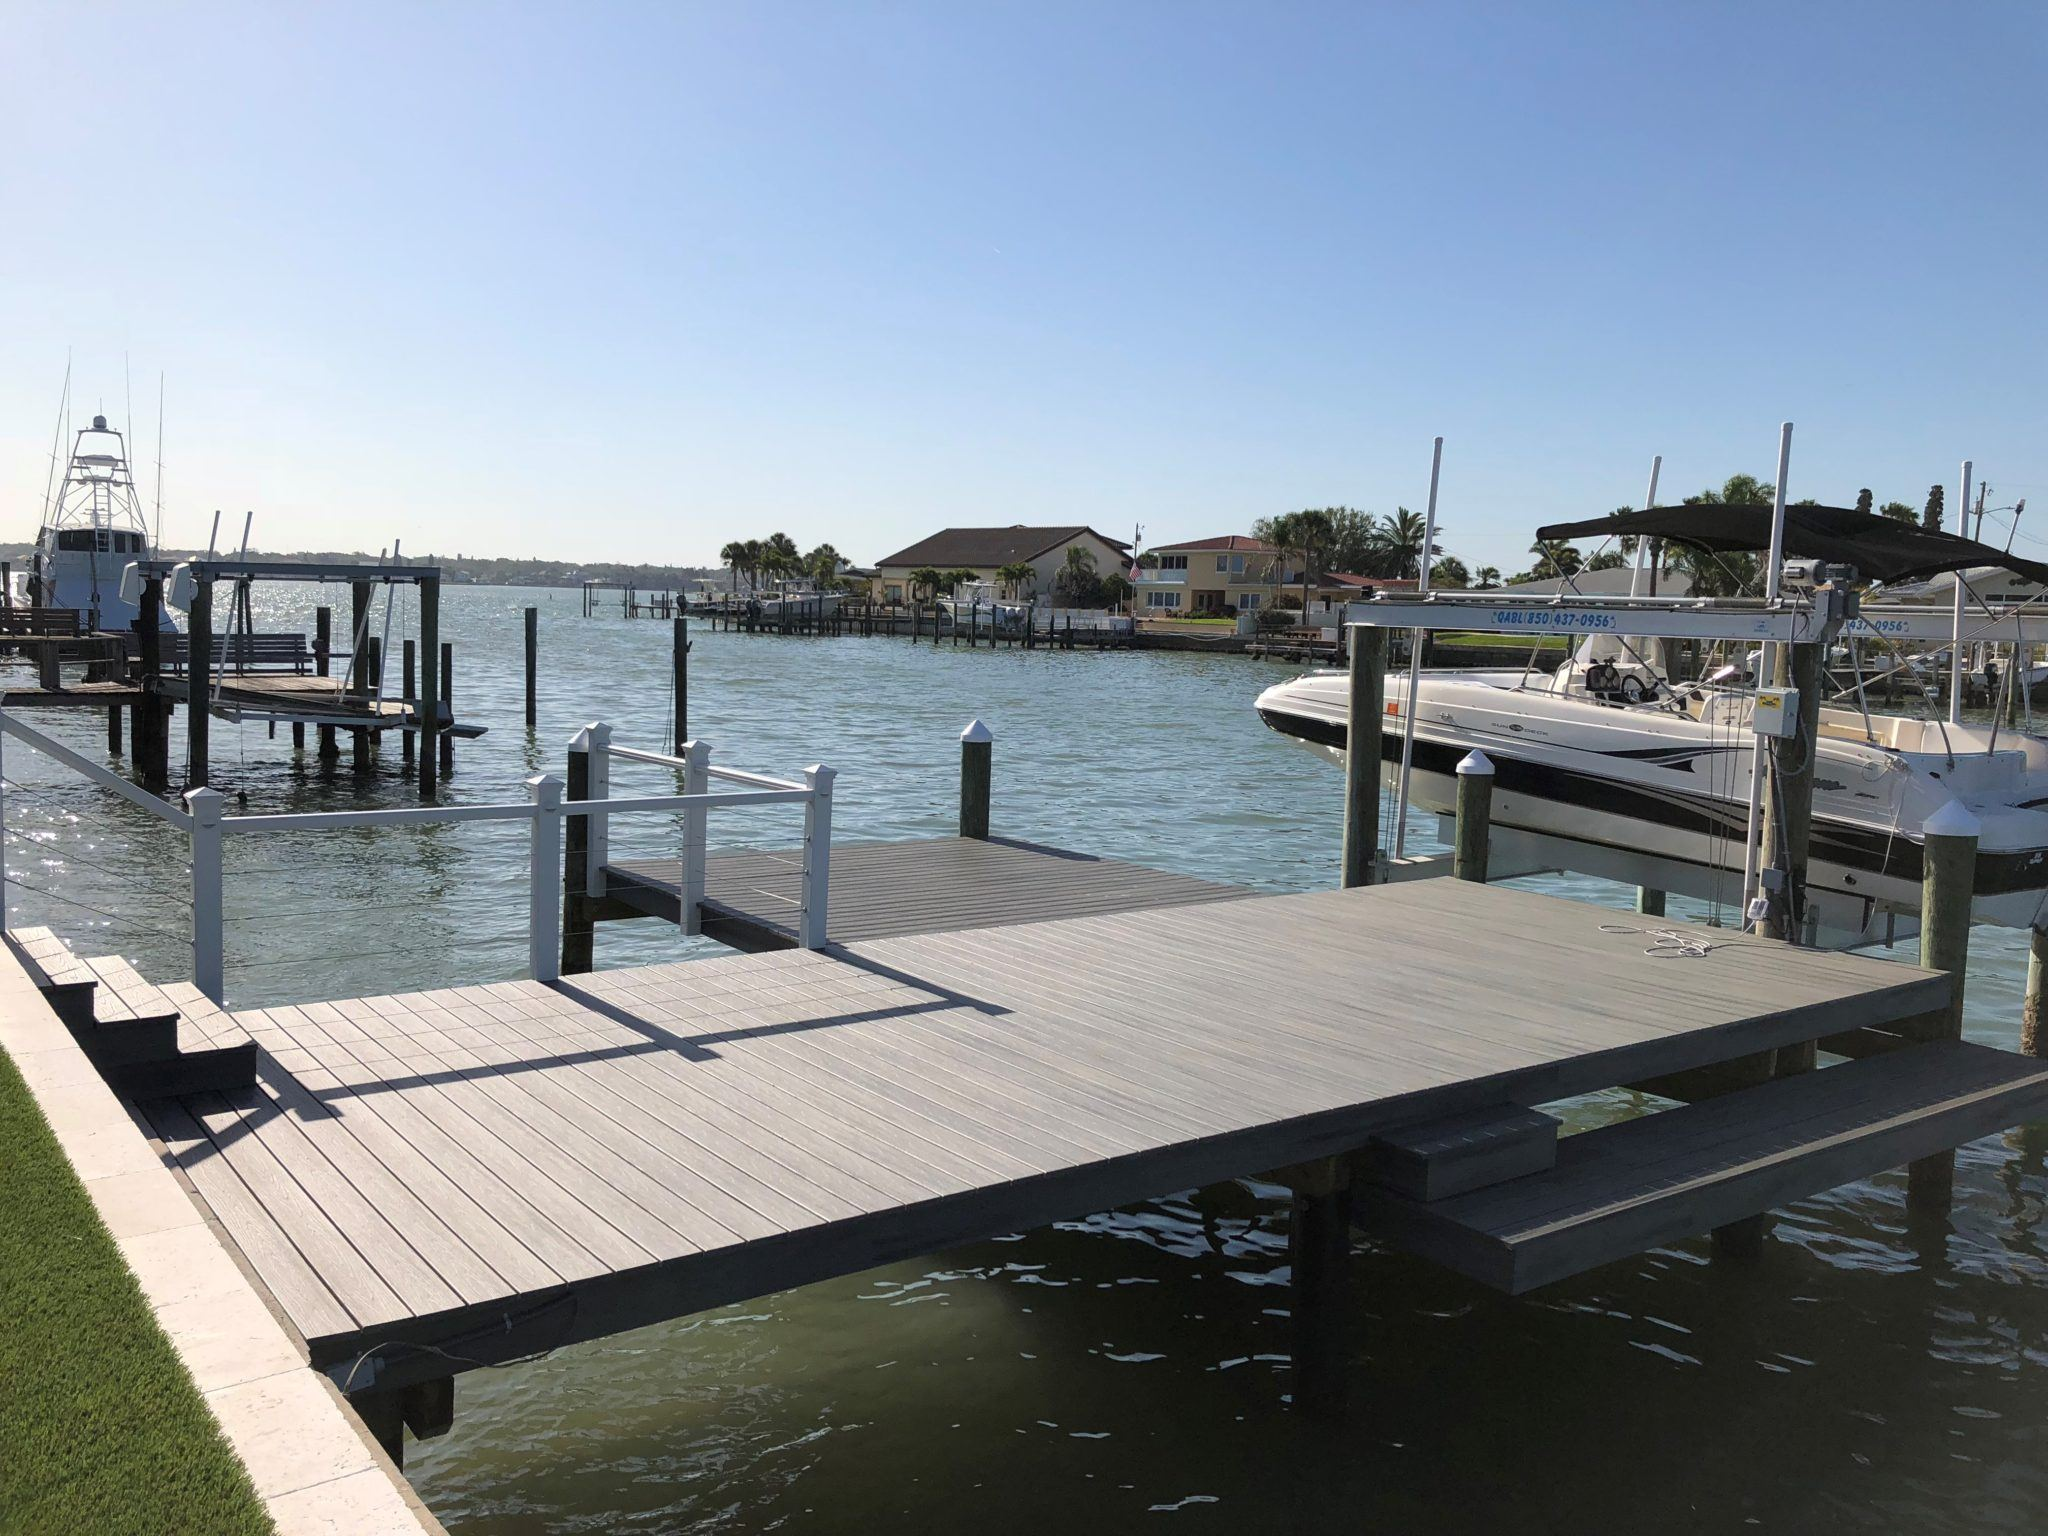 A stationary dock with Trex composite decking and stainless steel cable railing on the water